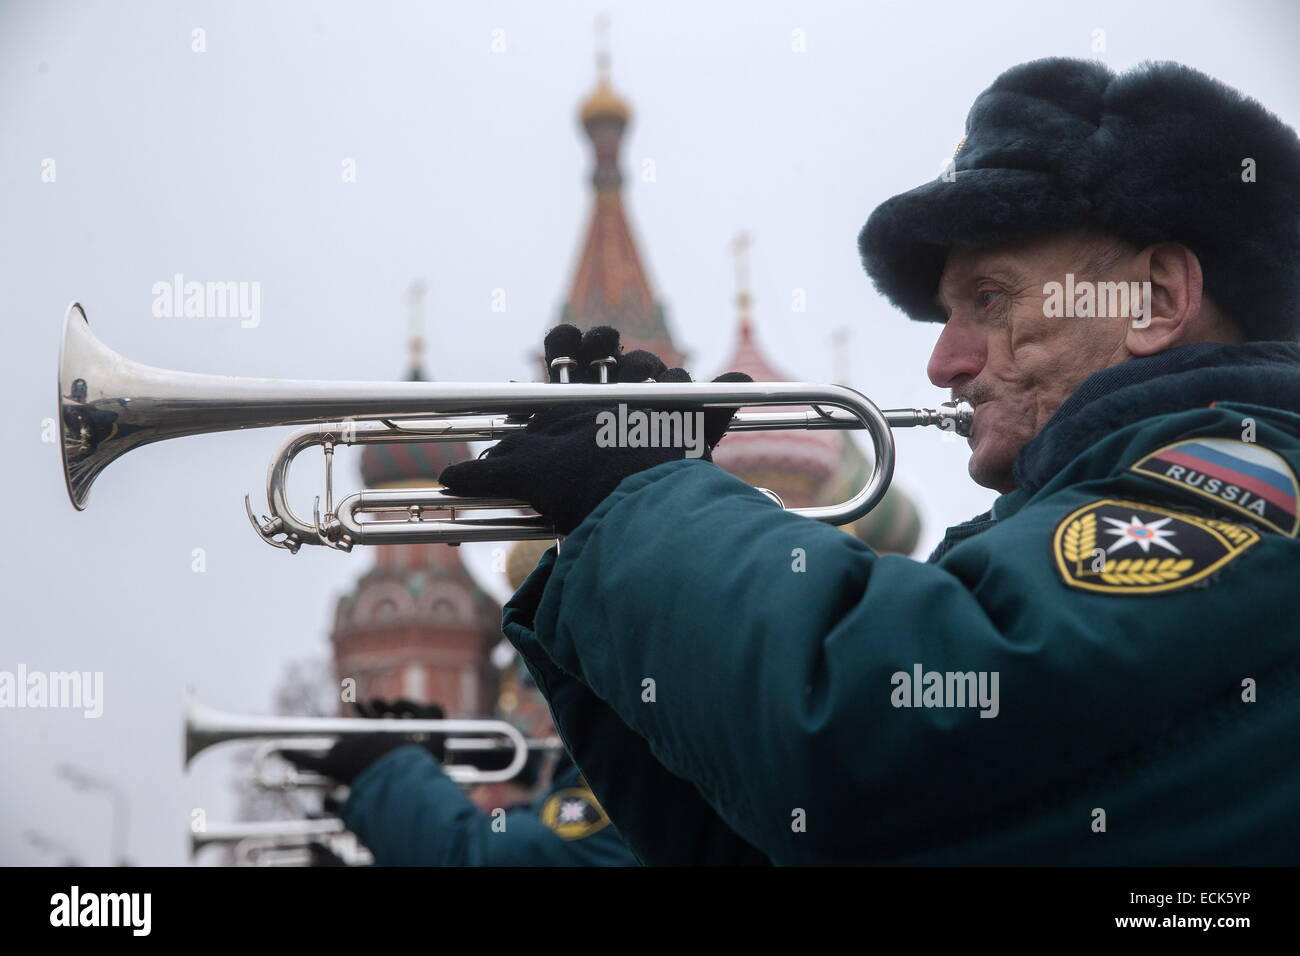 Moscow, Russia. 16th Dec, 2014. Russia's emergency situations ministry officers play wind instruments during - Stock Image